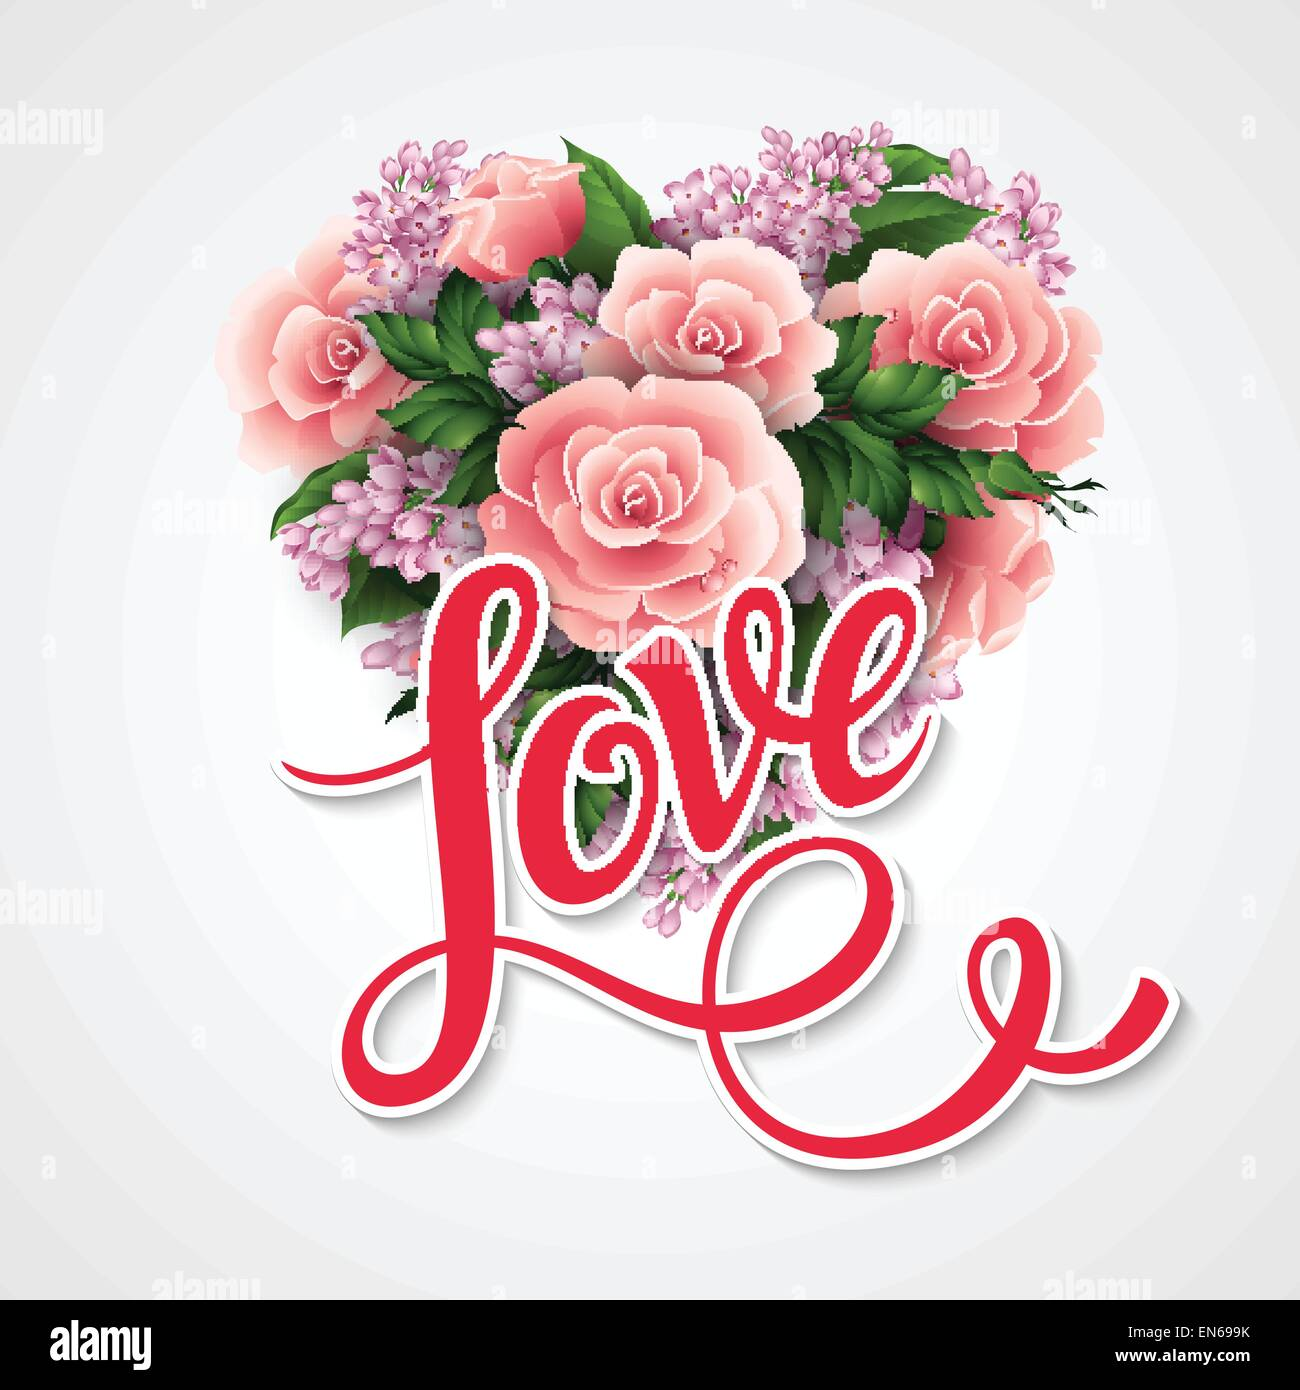 Valentines day vector illustration with a heart of beautiful flowers valentines day vector illustration with a heart of beautiful flowers izmirmasajfo